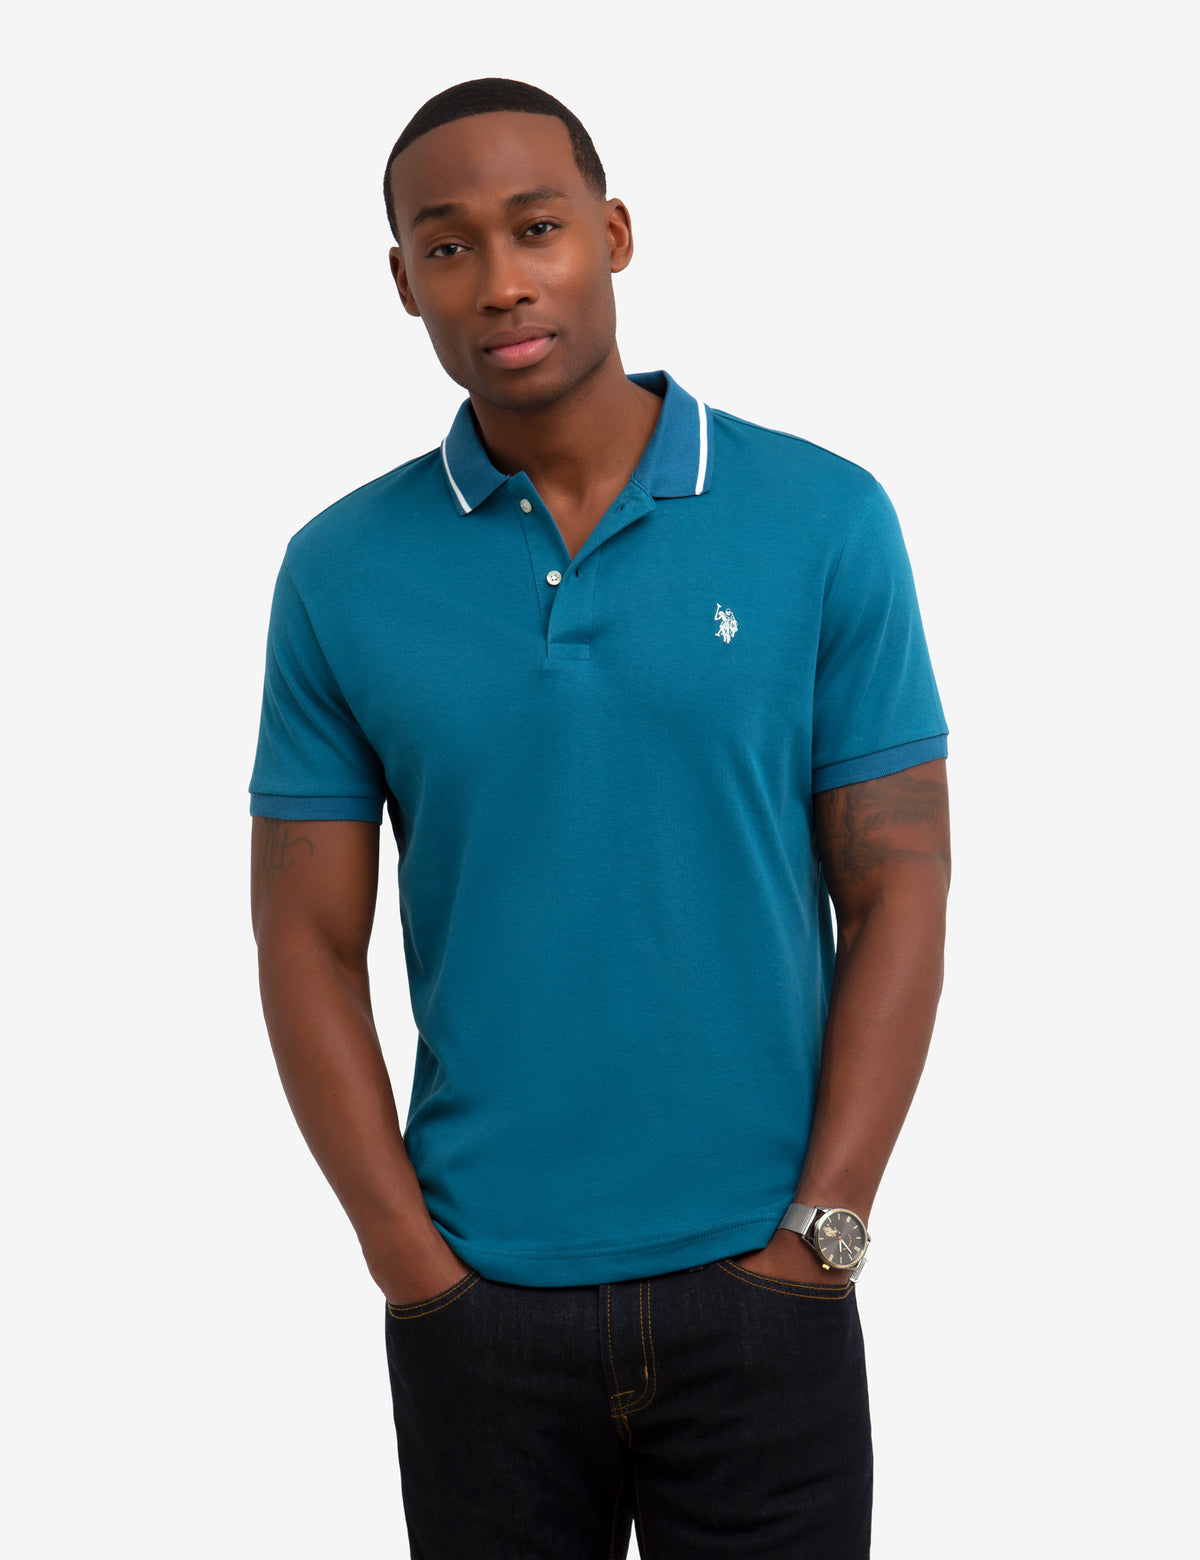 SLIM FIT TIPPED INTERLOCK POLO SHIRT - U.S. Polo Assn.